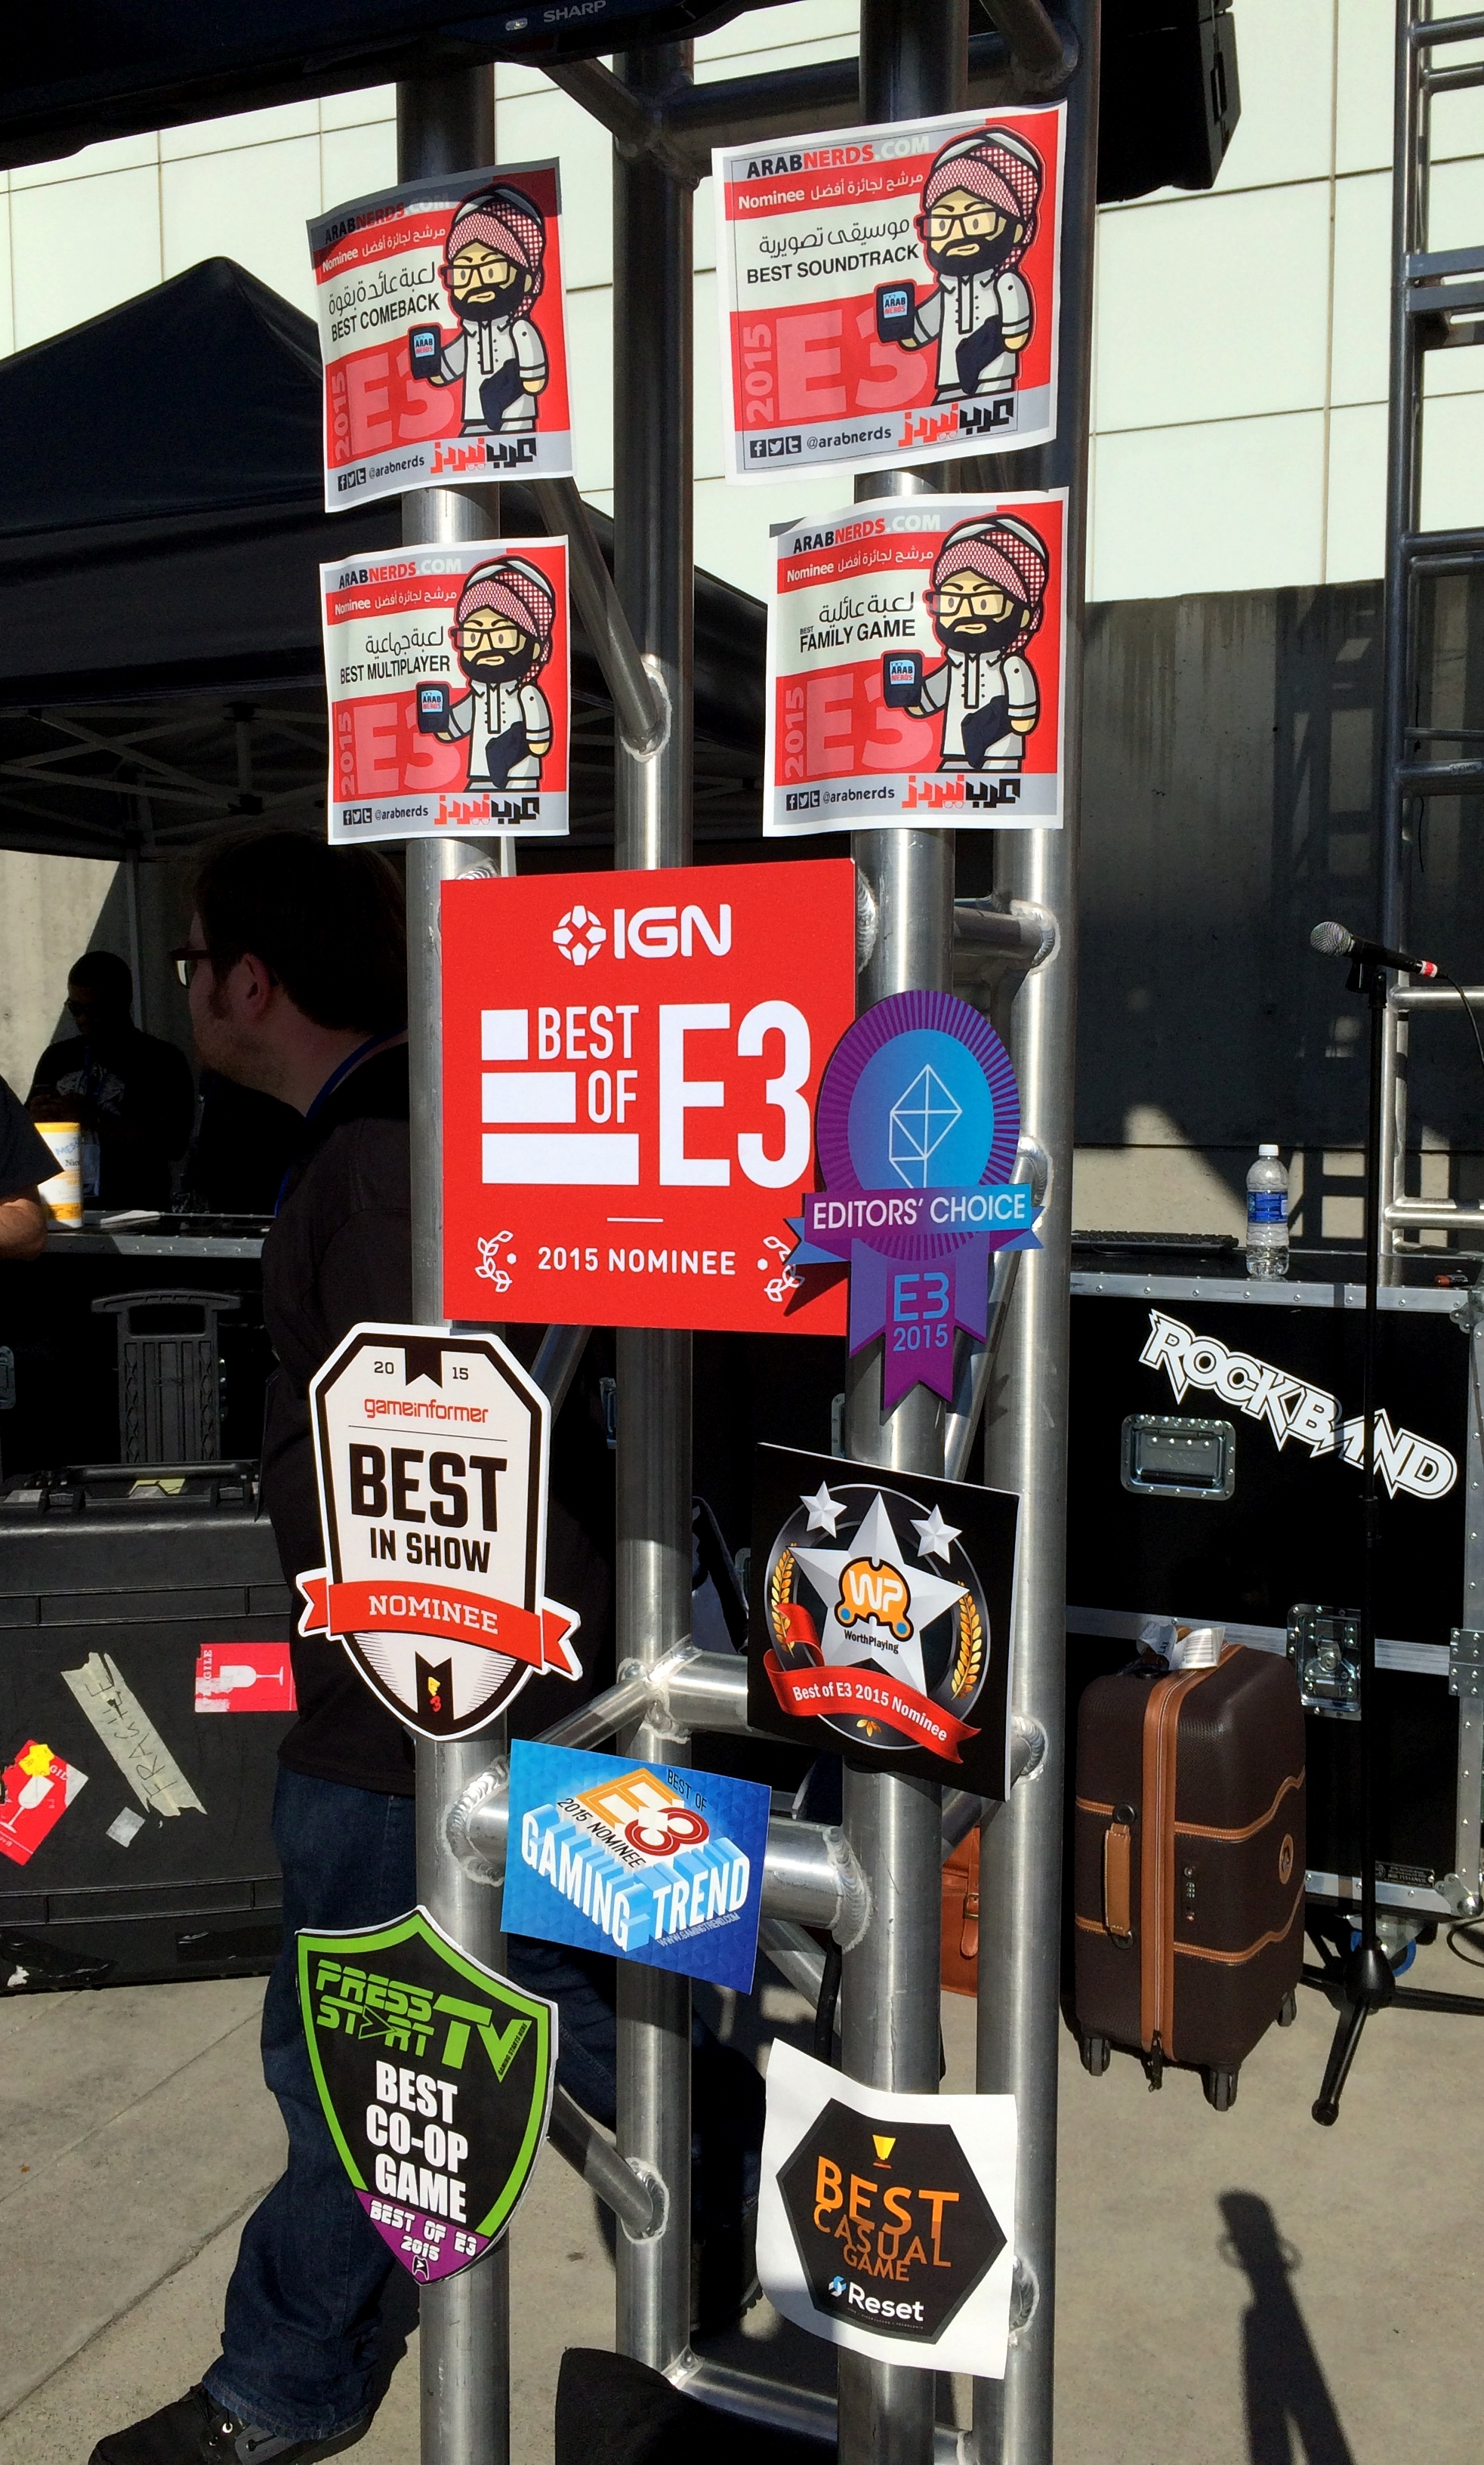 The awards at the end of E3